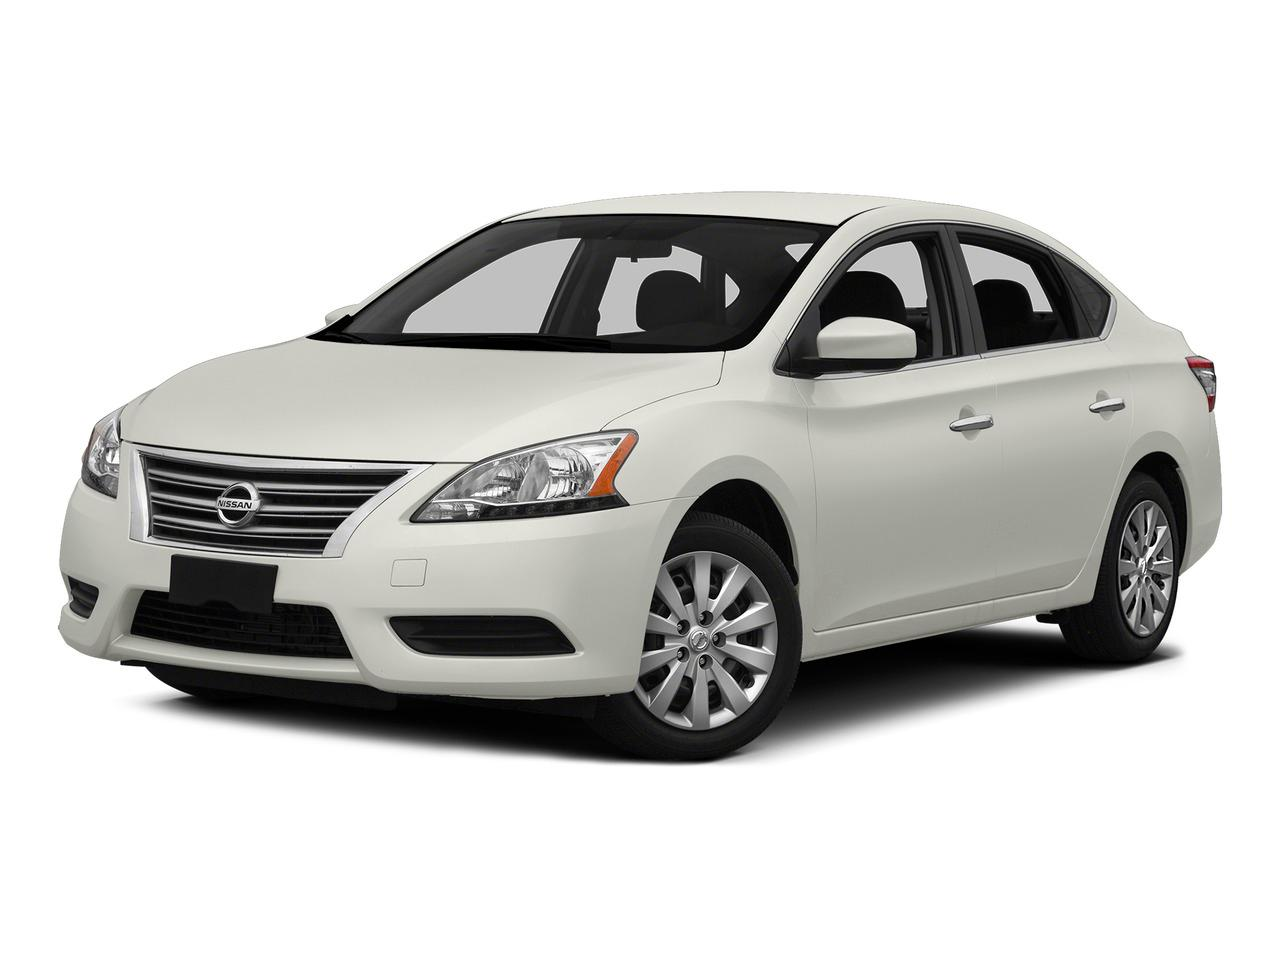 2015 Nissan Sentra Vehicle Photo in Moon Township, PA 15108